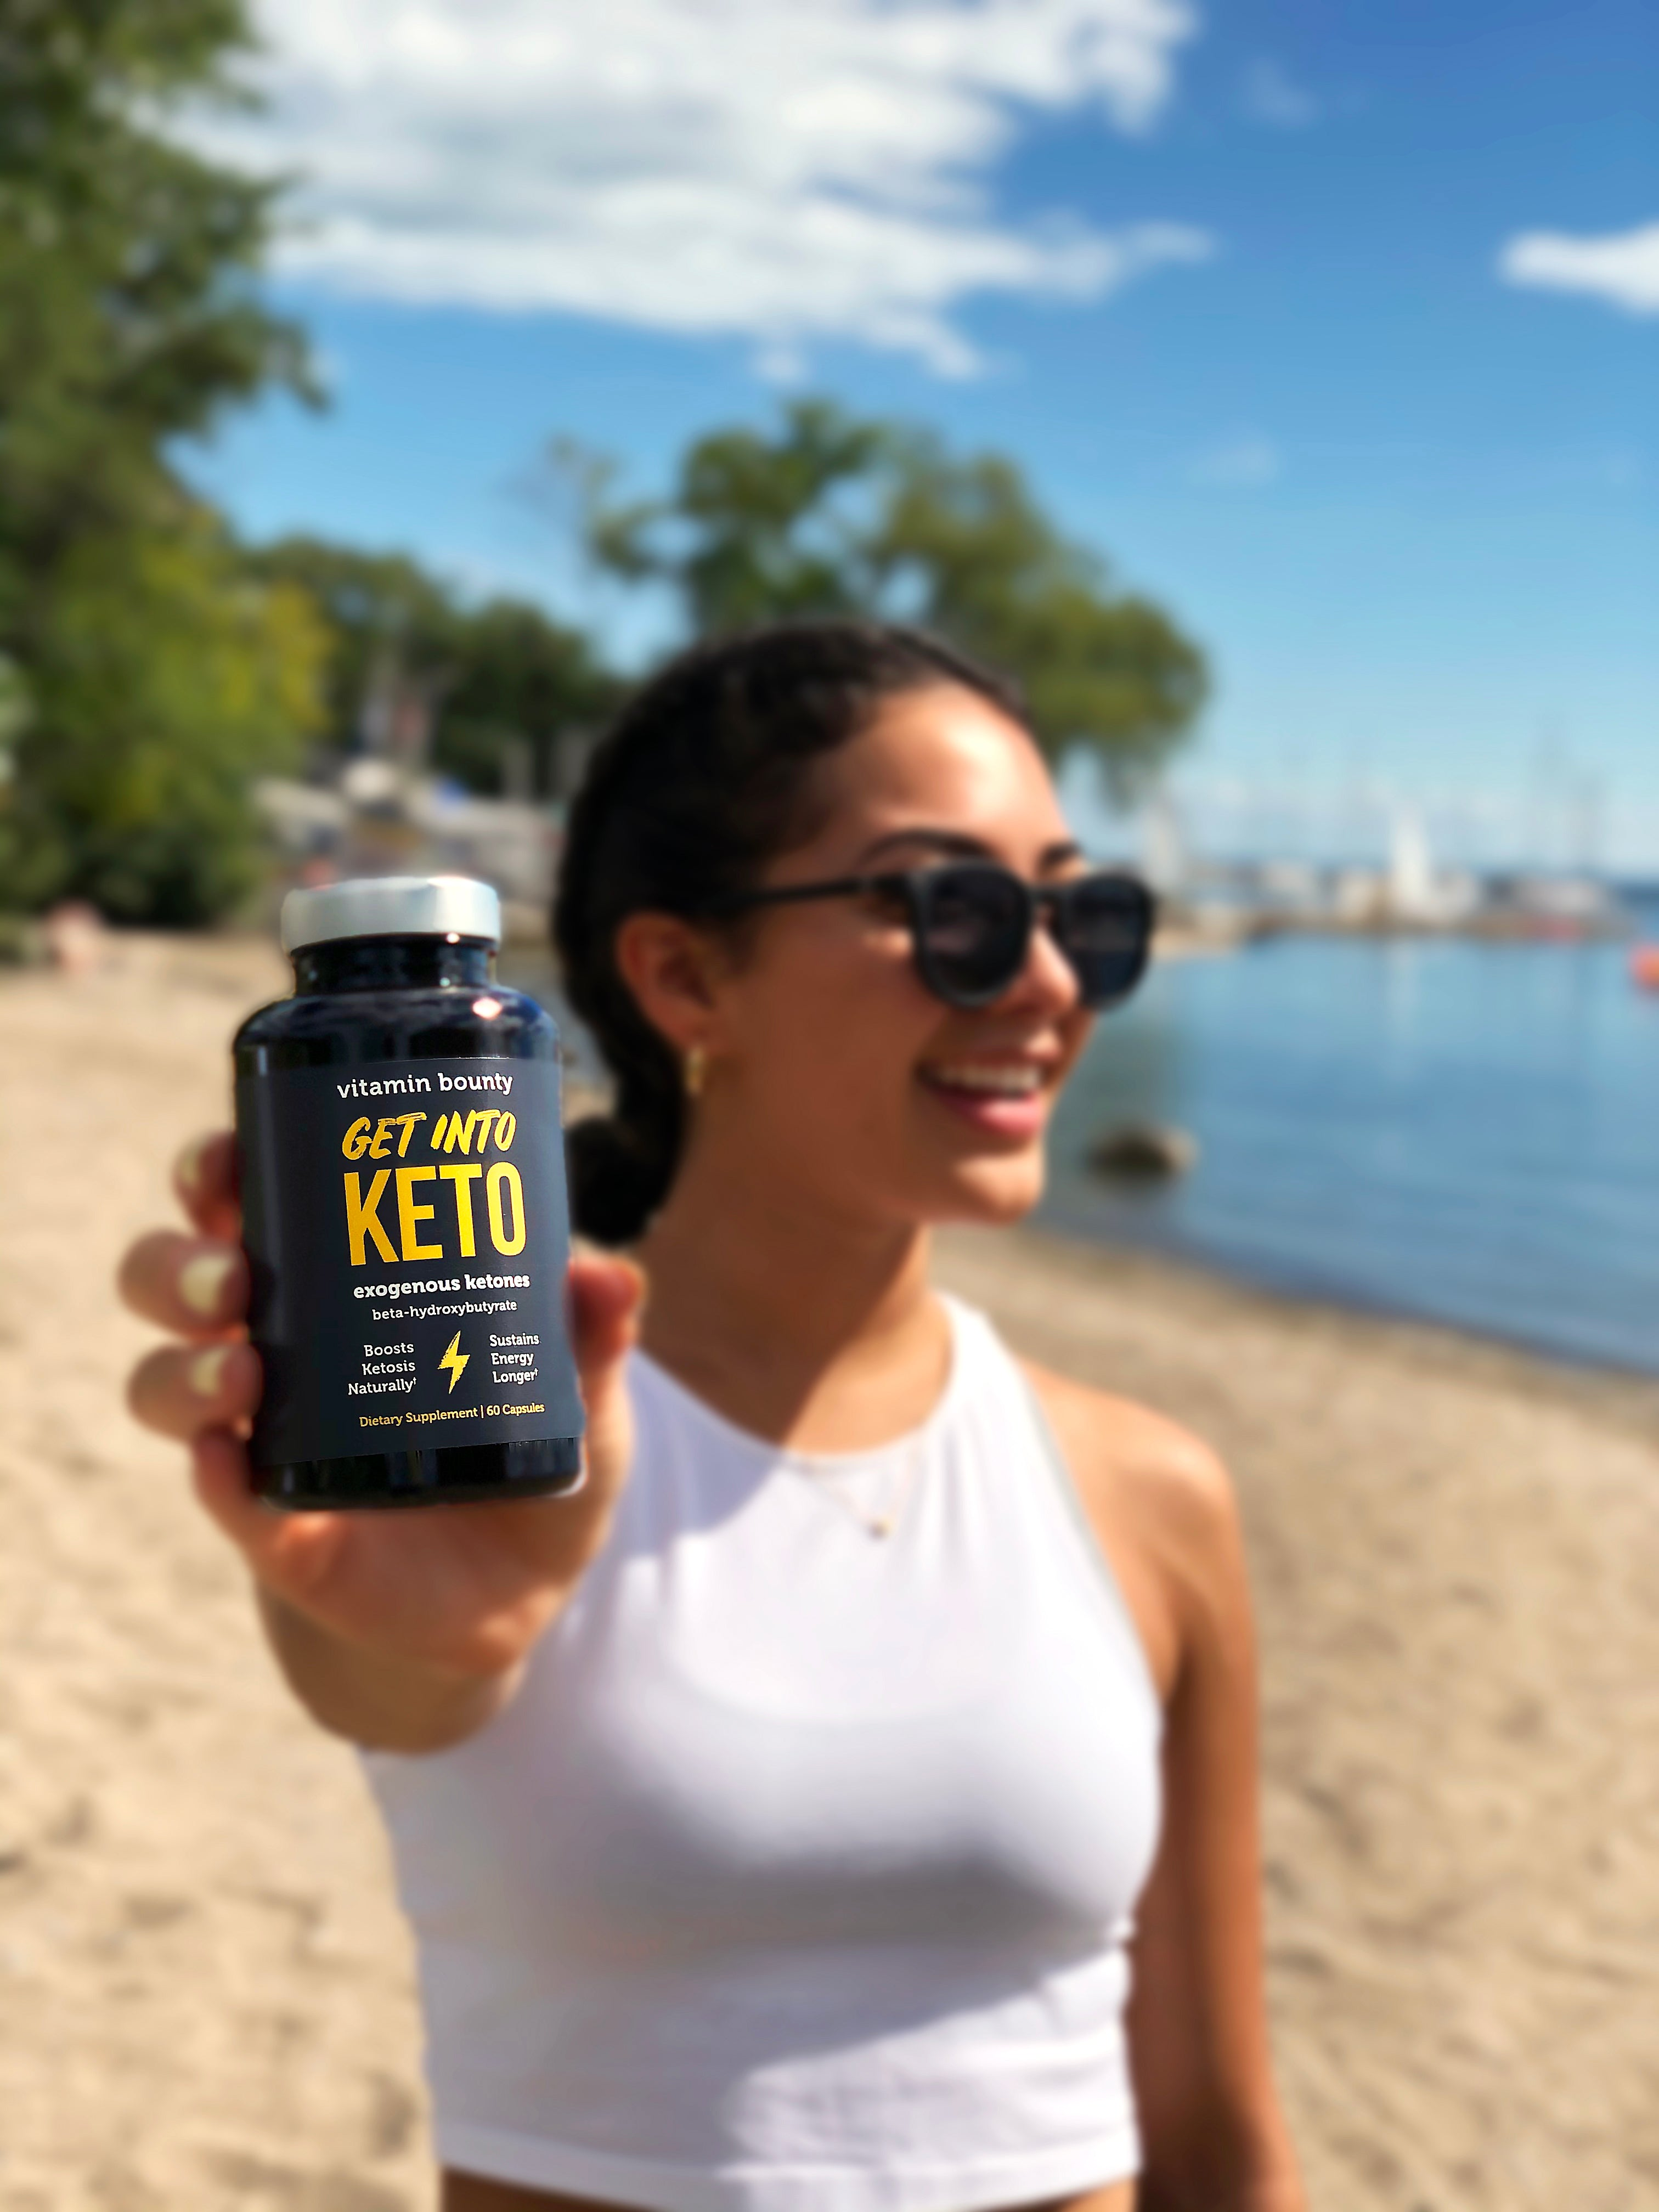 Kickstart your keto journey